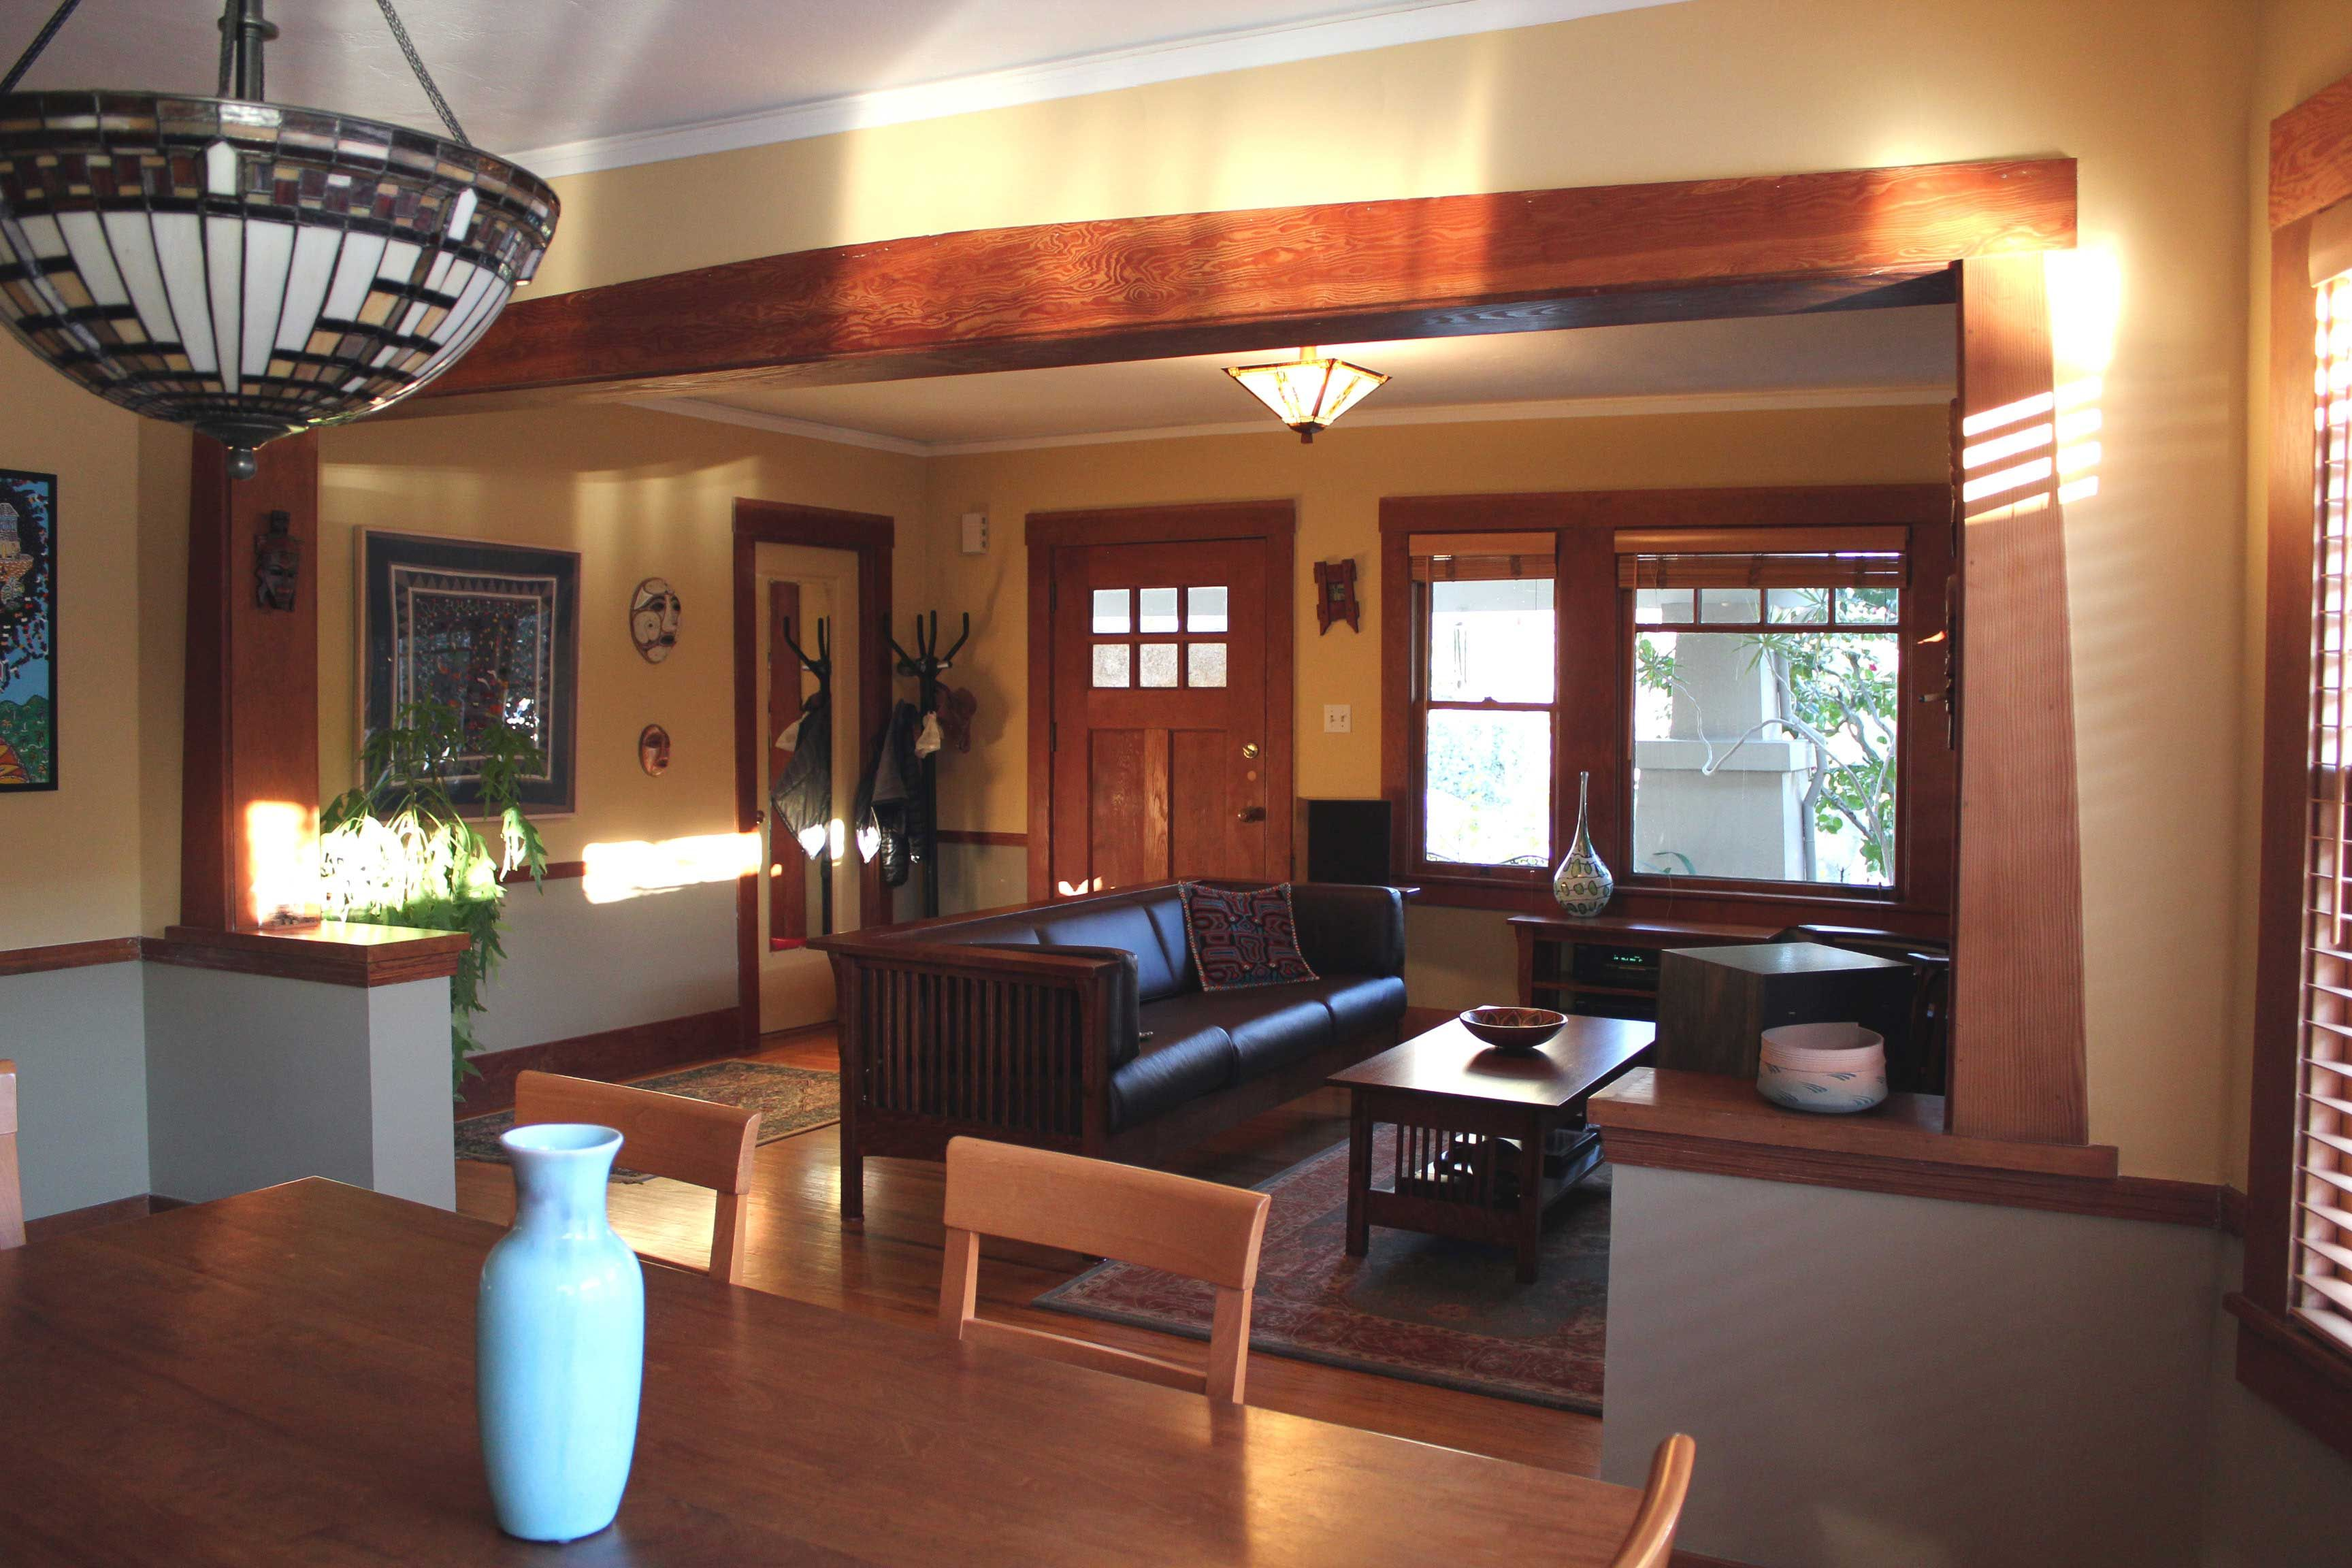 Bungalow Style Home, Berkeley, CA Decorating Job By MP DESIGN (furniture,  Lighting